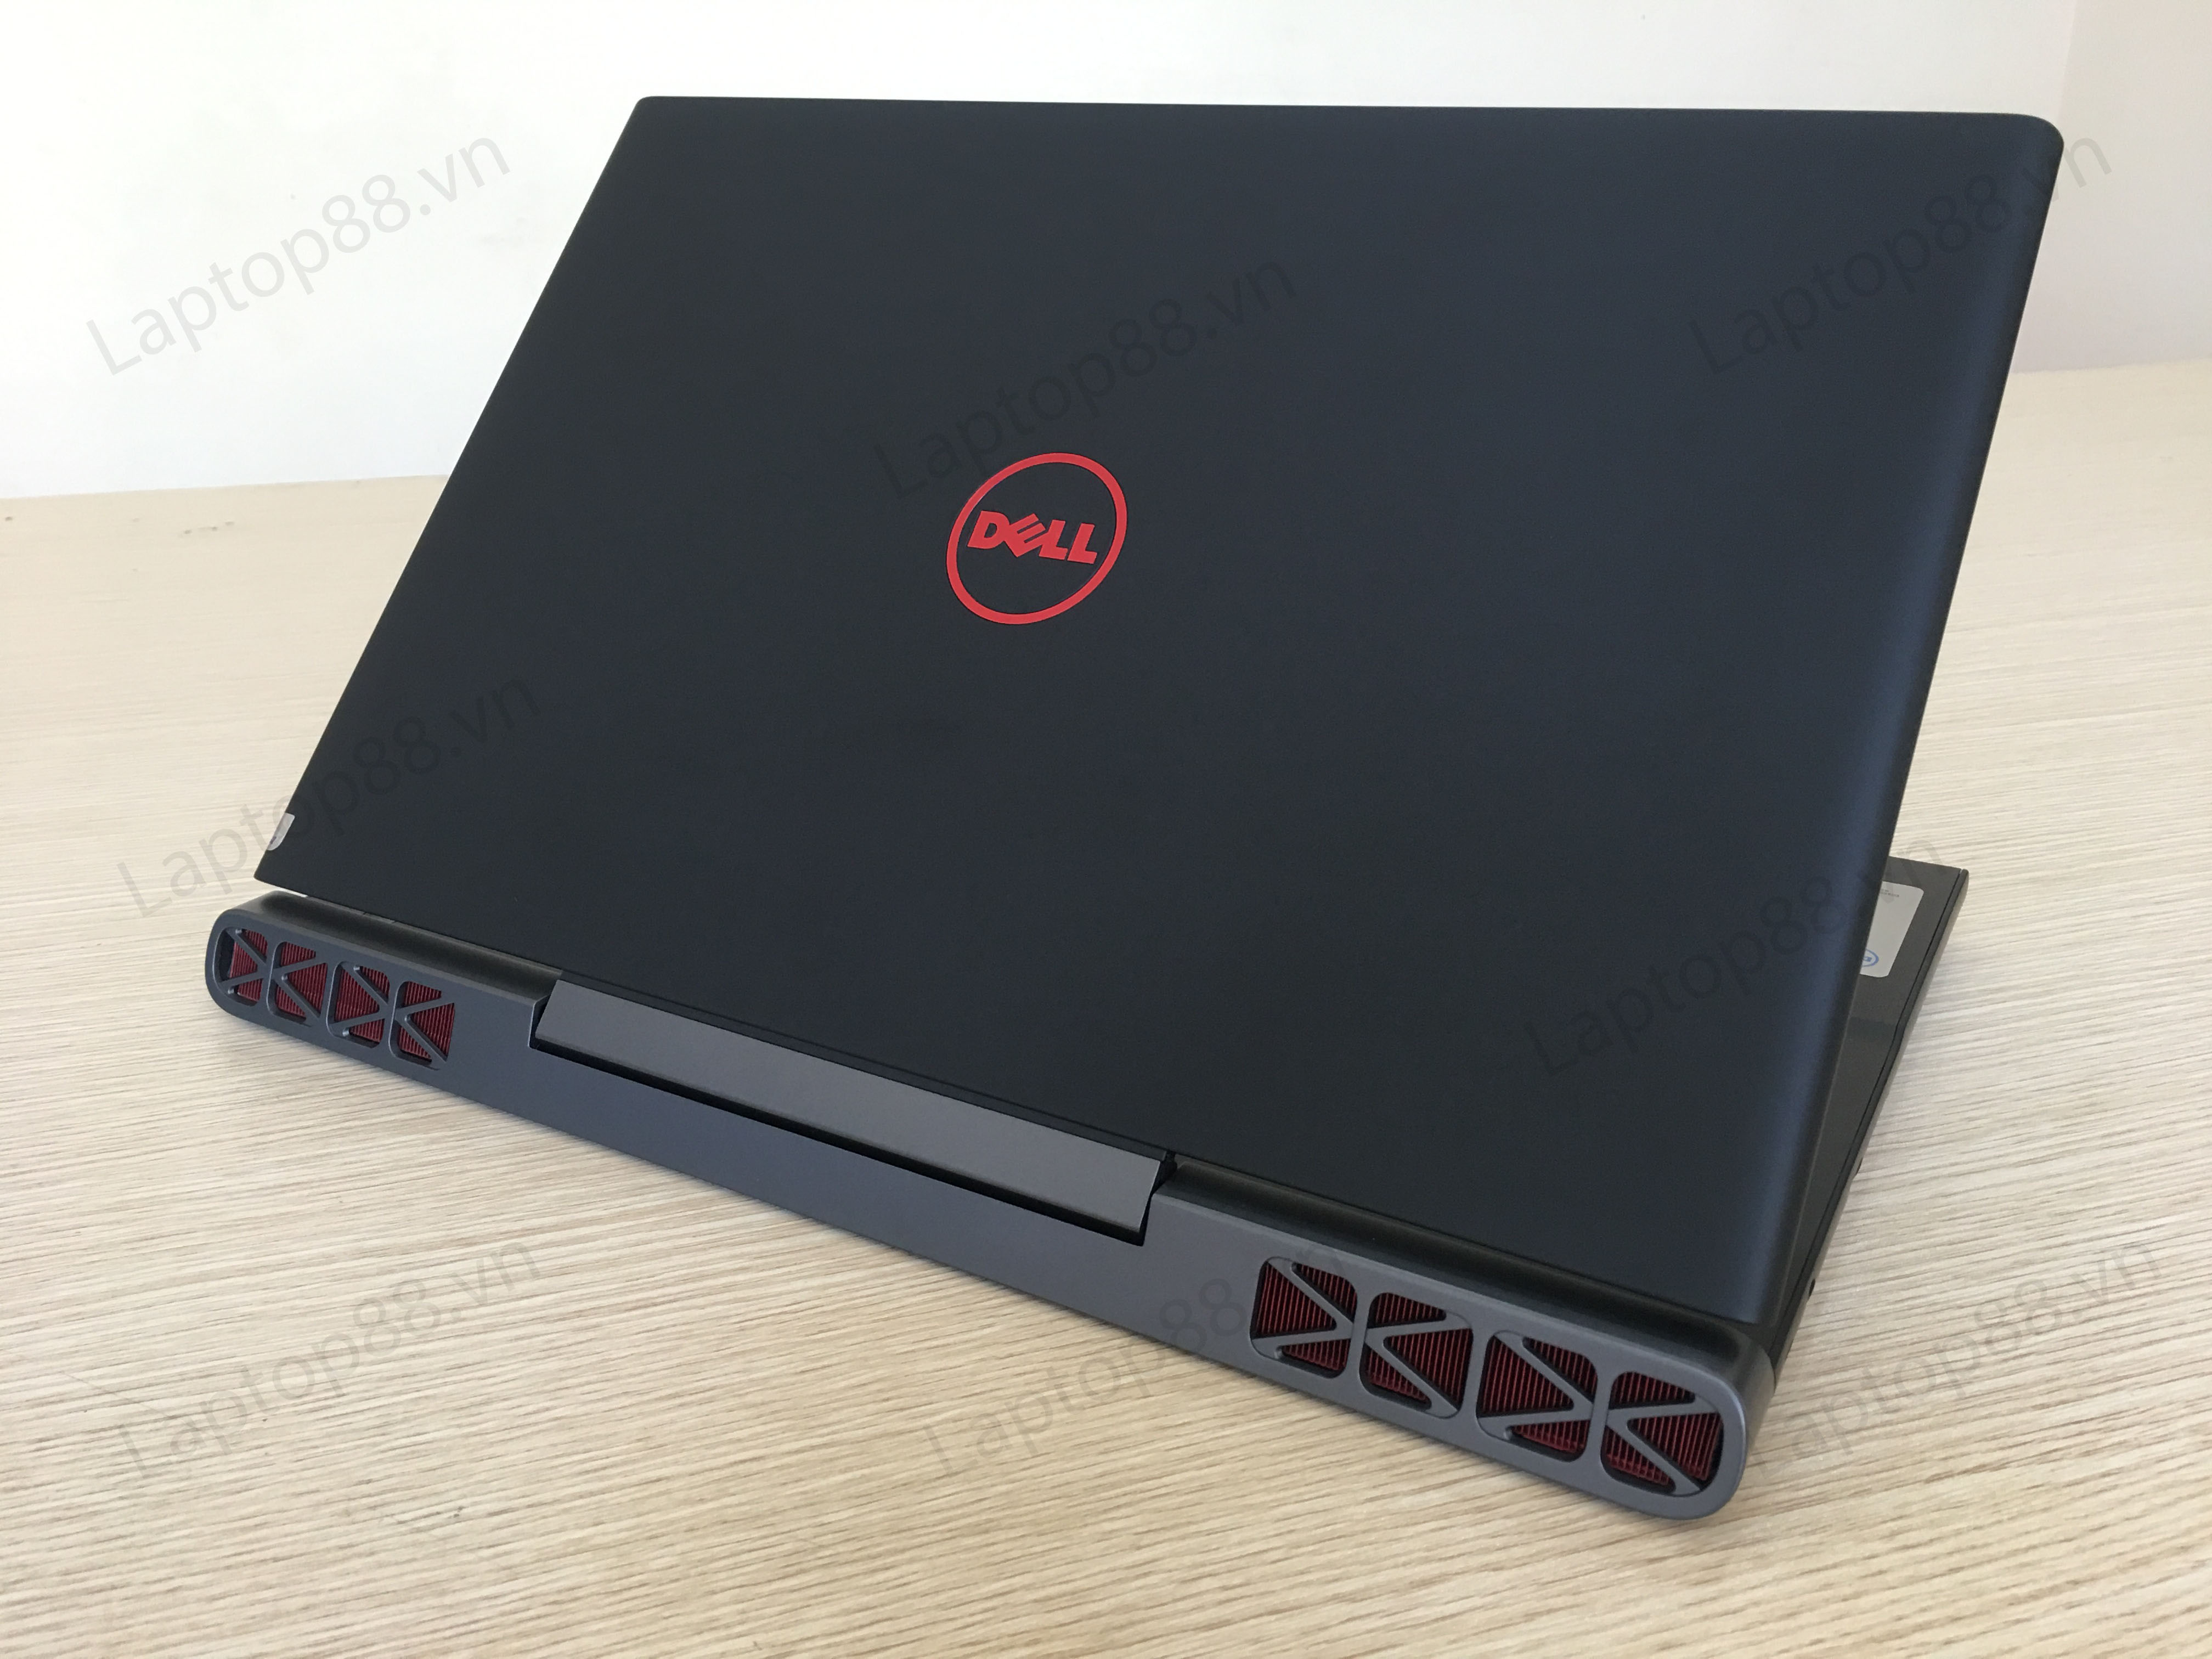 Dell Inspiron 7567 - Laptop của những game khủng!